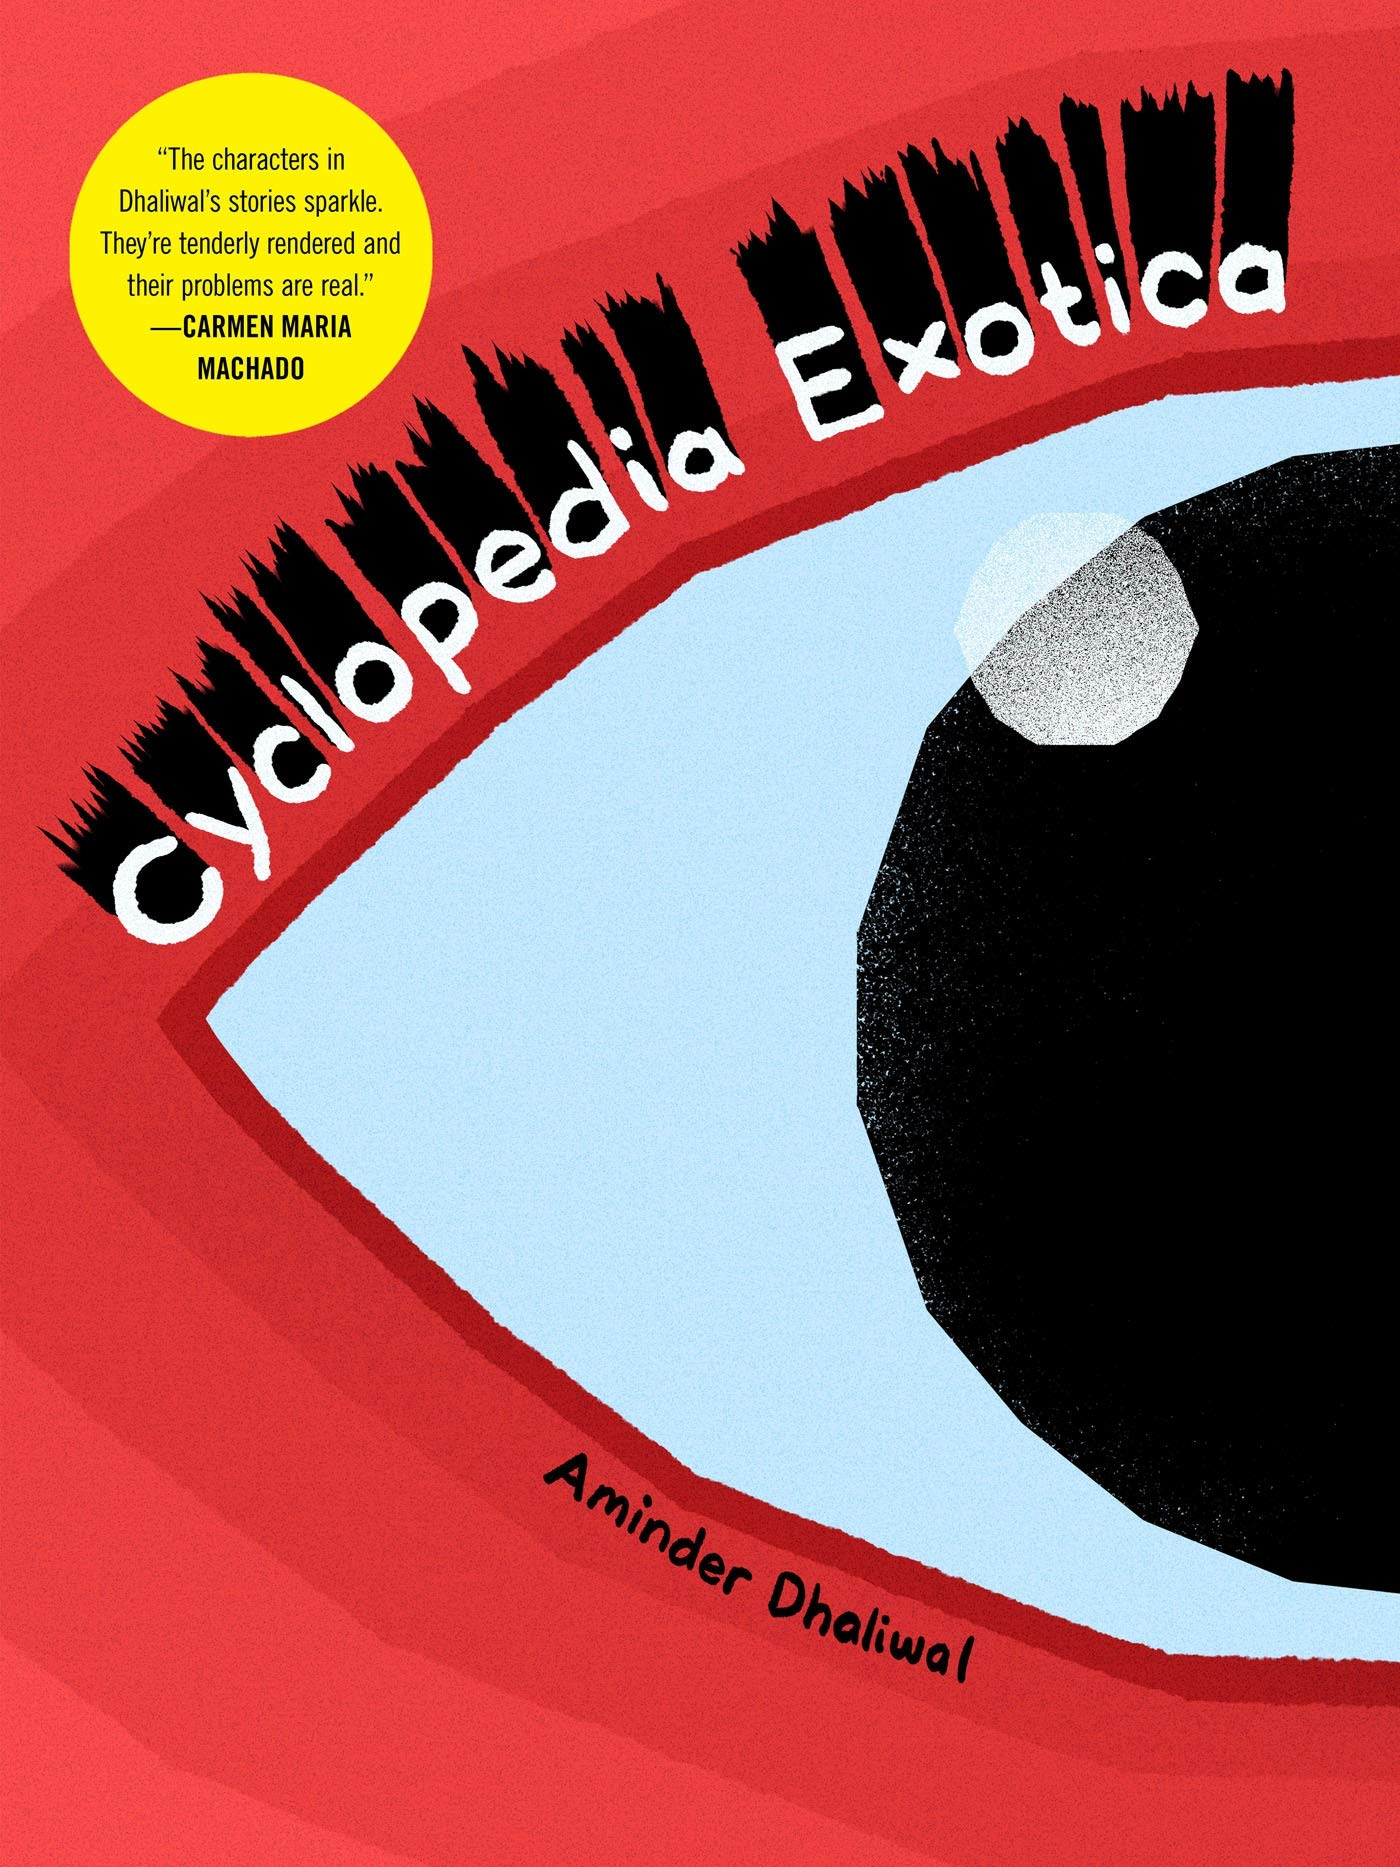 'Cyclopedia Exotica' pokes fun at some very real frustrations